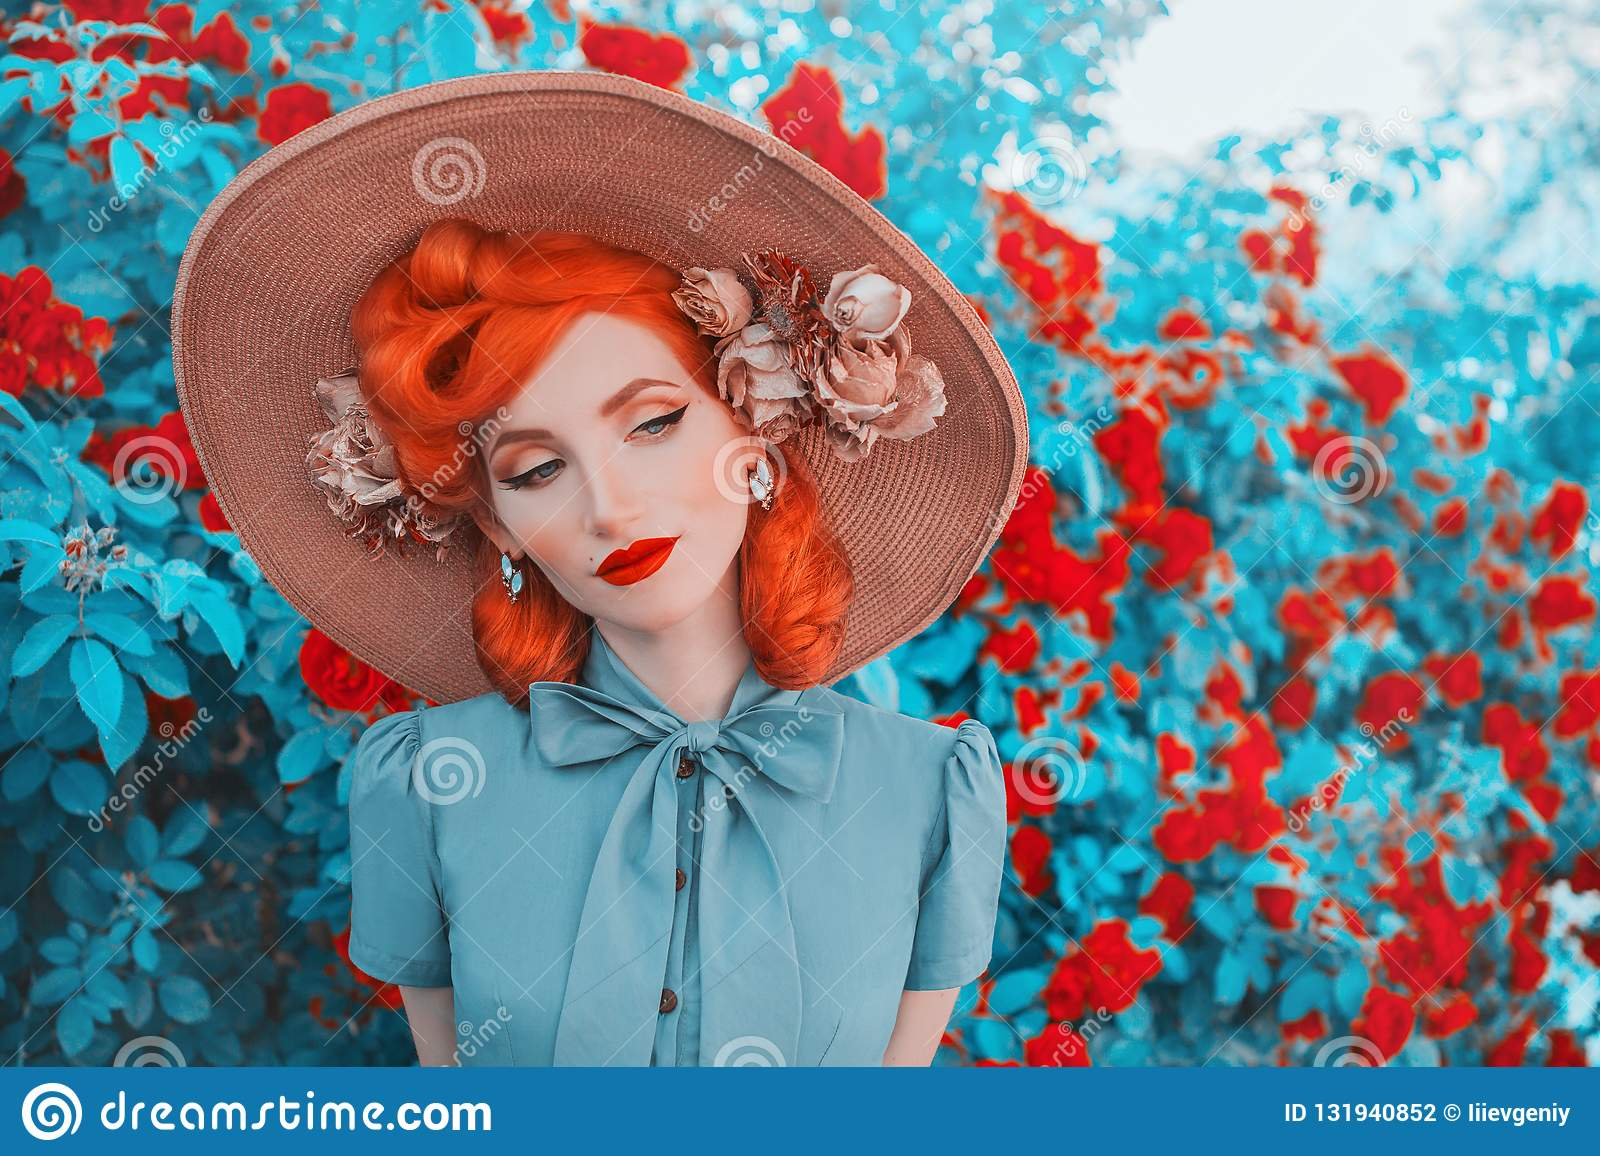 Valentines Day background. Vintage girl with red lips in awesome mint dress. Summer flowers aroma. Woman portrait. Awesome redhead